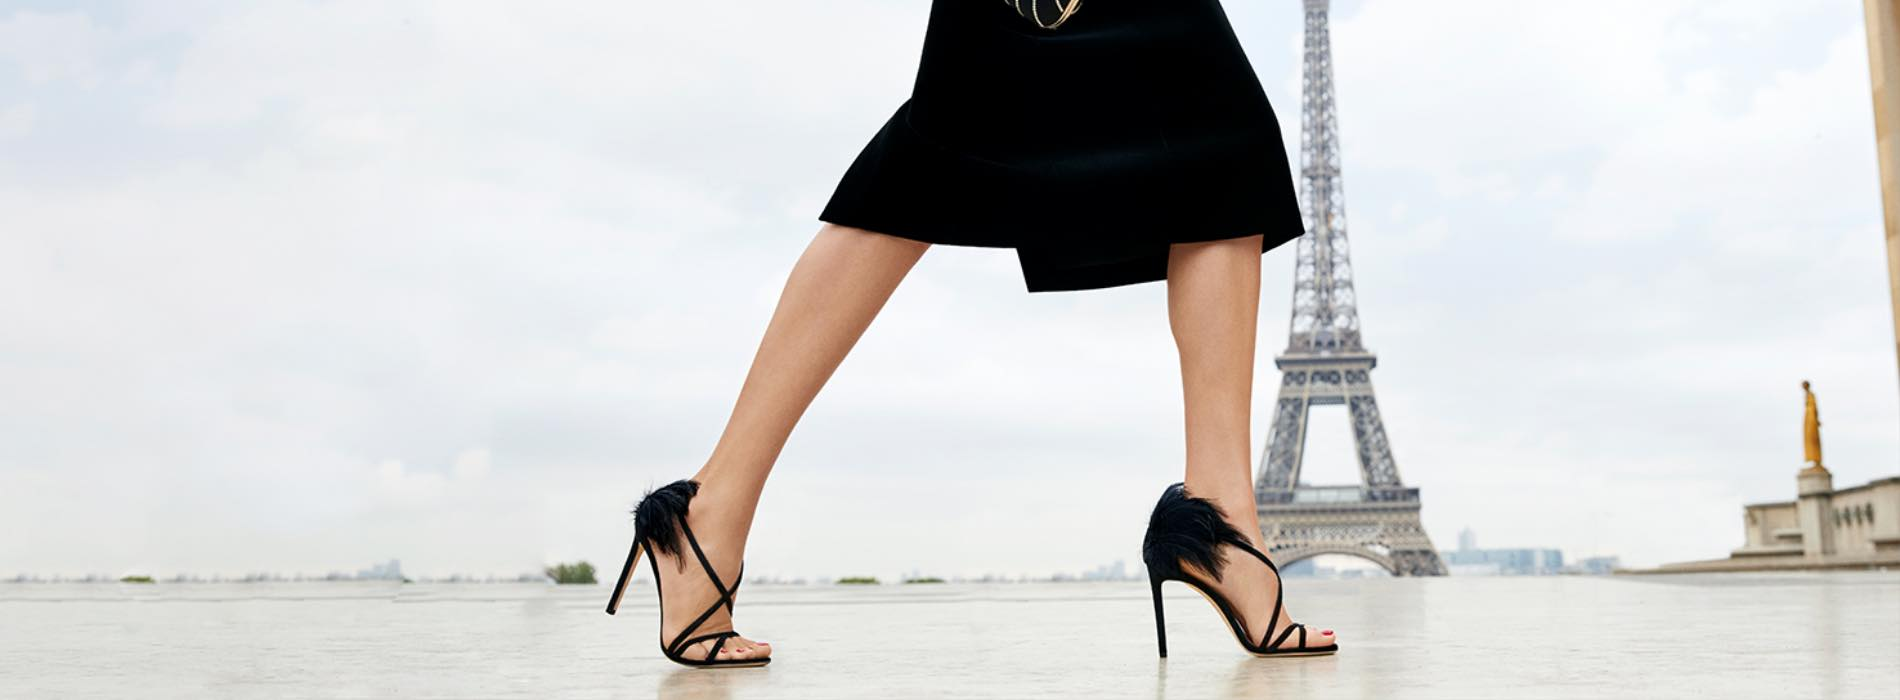 Shop the Jimmy Choo x Net-a-porter collection